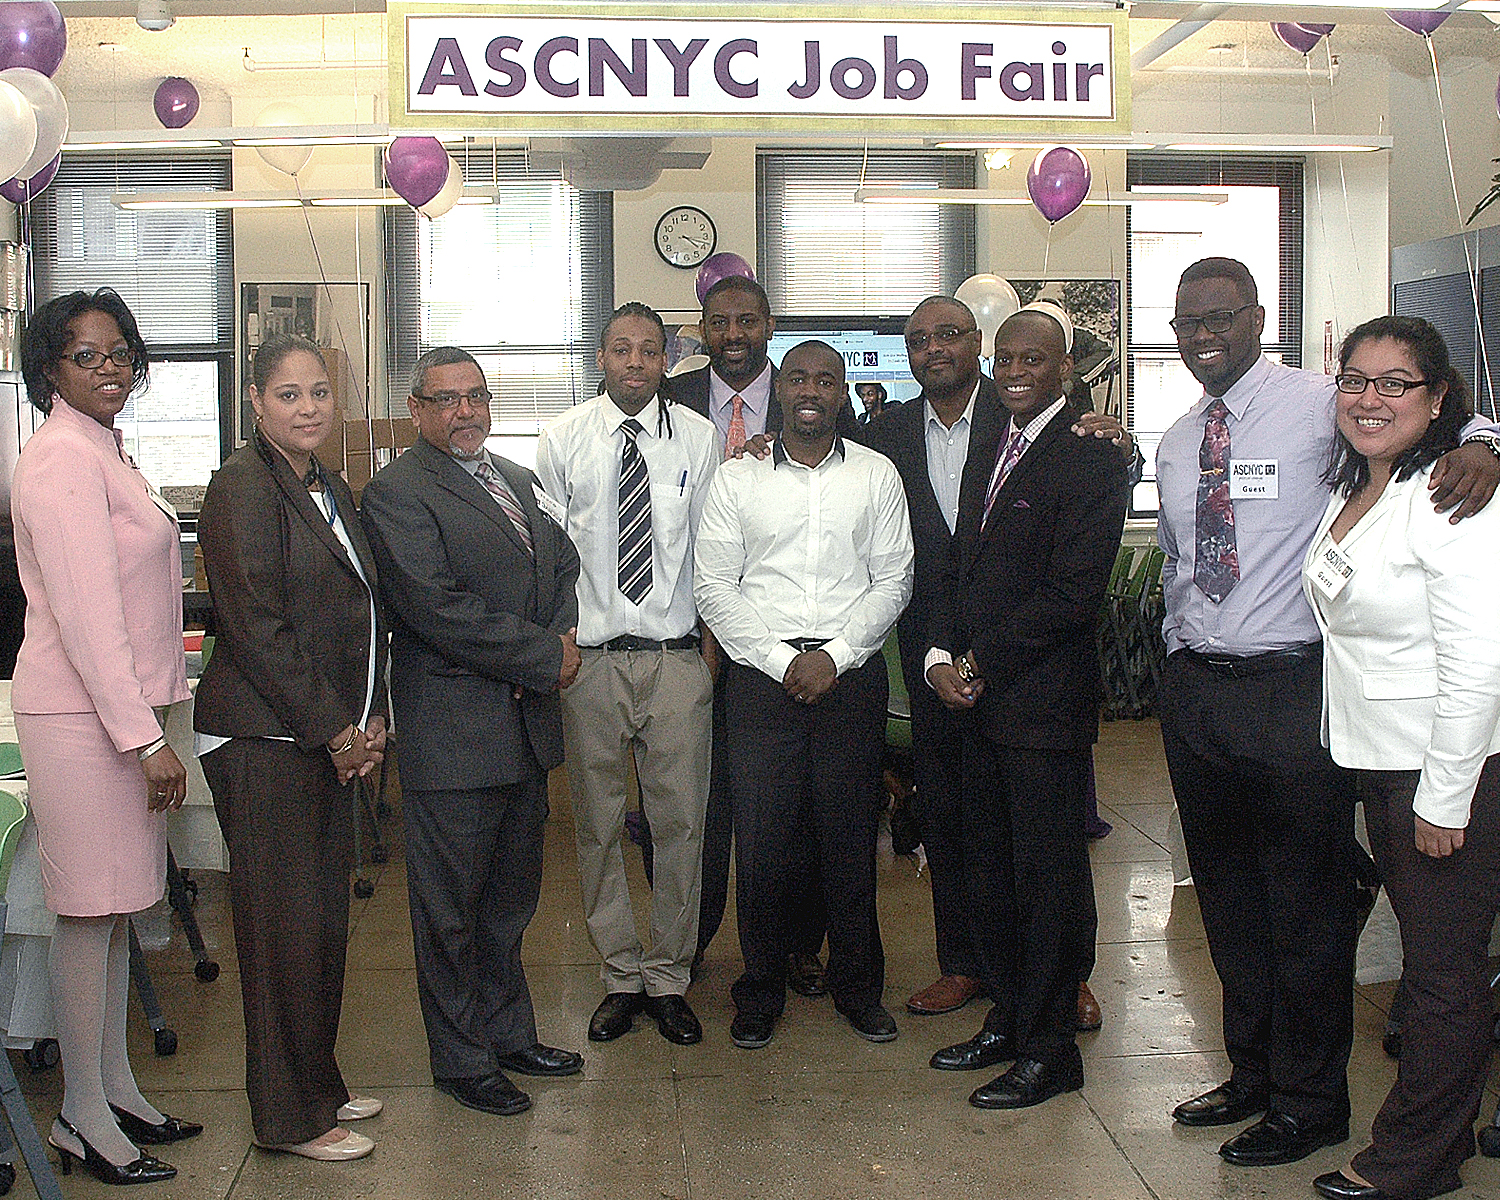 Jean Pierre Louis, Dennis Martin with the Job Fair interviewers and an attendee